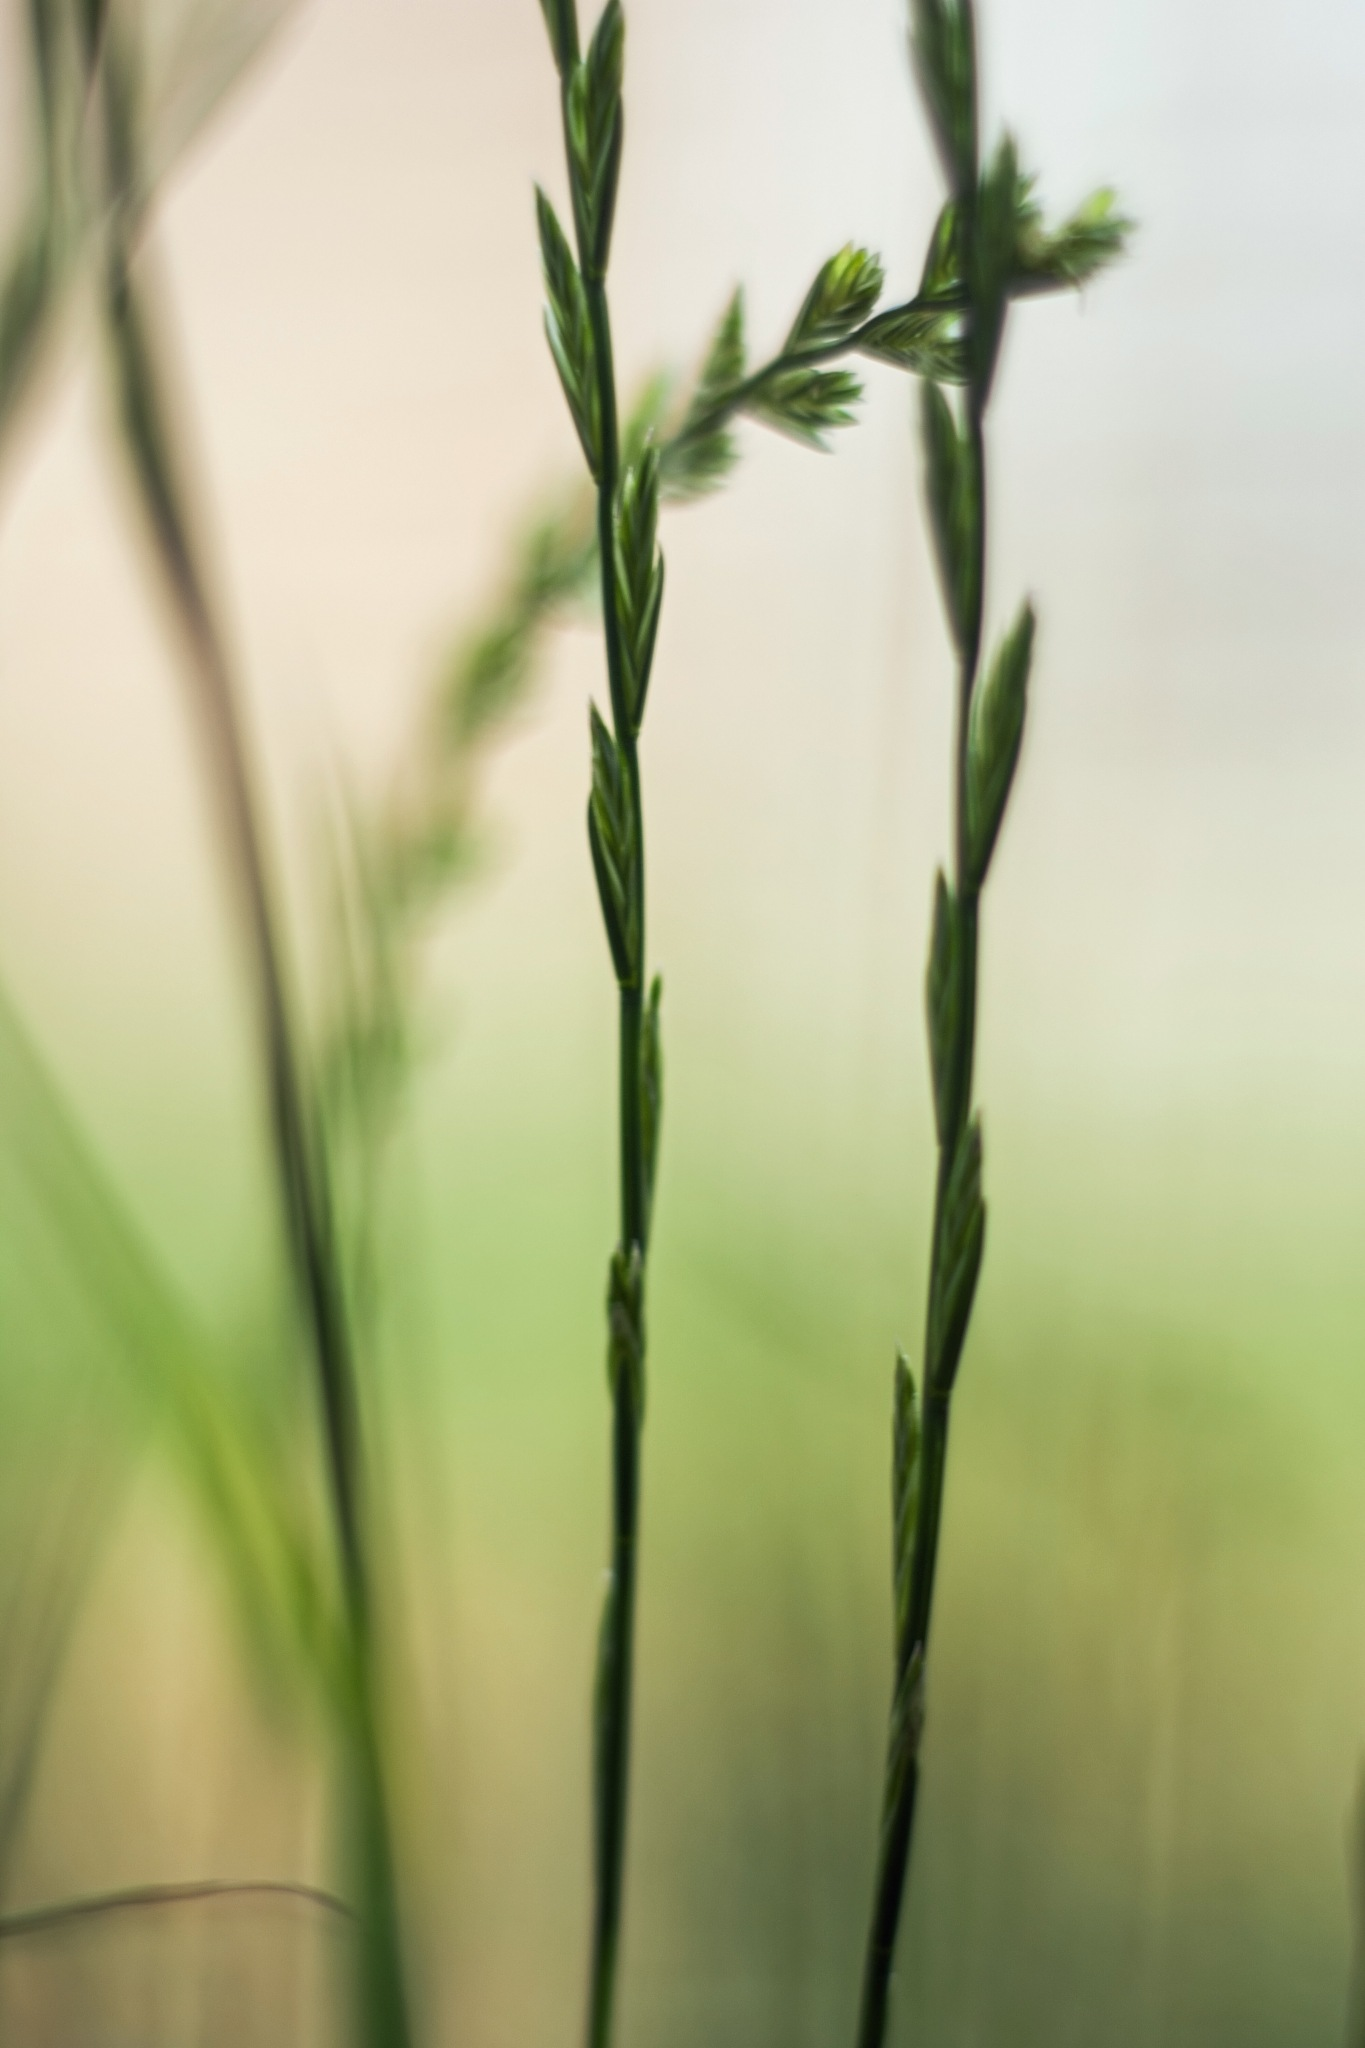 Growing grass by MADOLDIE